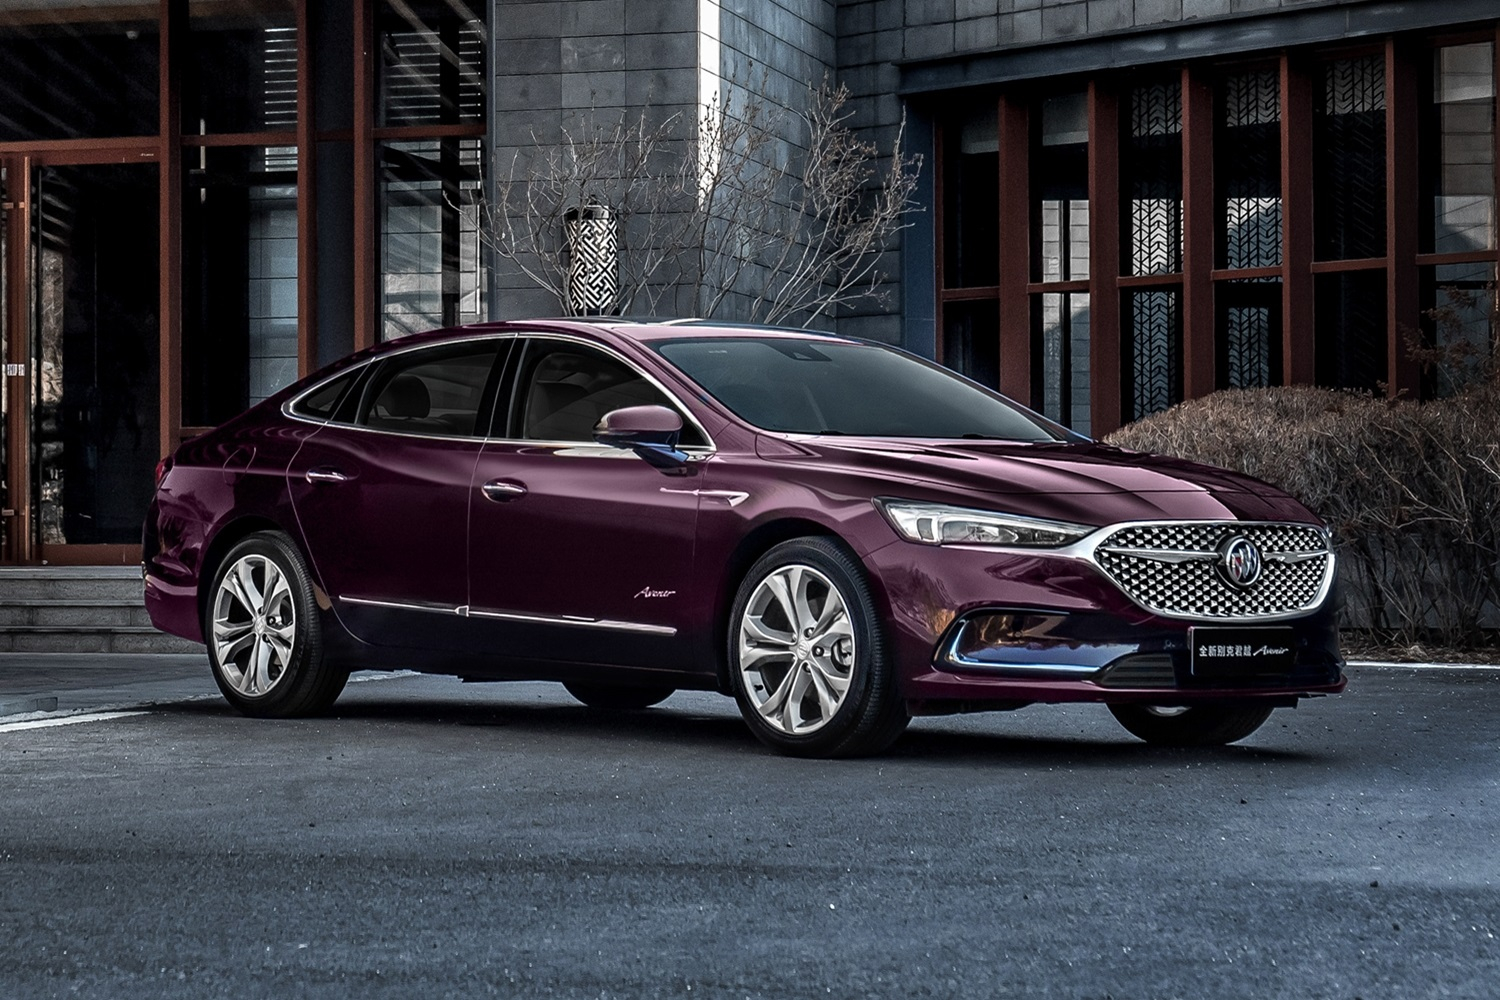 2021 Buick Lacrosse Gets More Refined Than Ever | Gm Authority New 2021 Buick Lacrosse Exterior Colors, Interior Colors, Dimensions